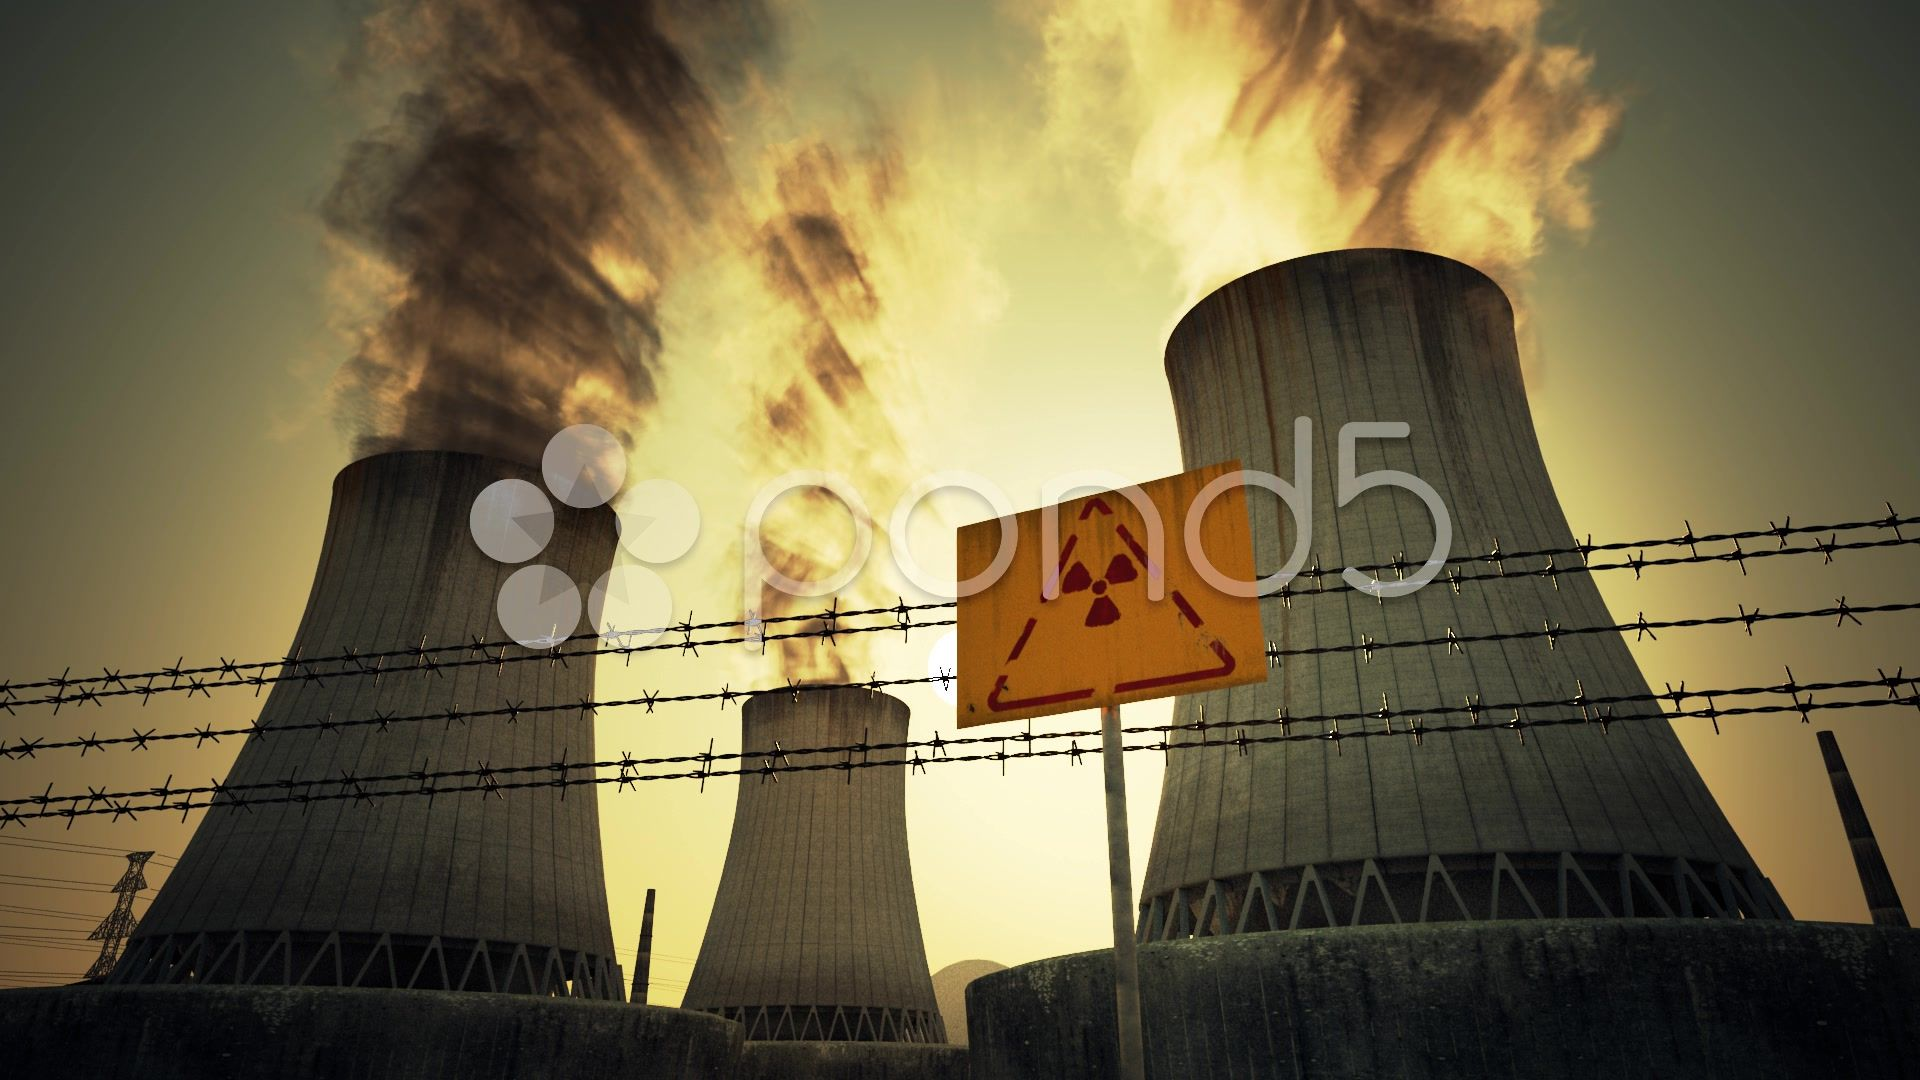 Nuclear Power Plant Cooling Towers Radioactive Sign Sunset Stock